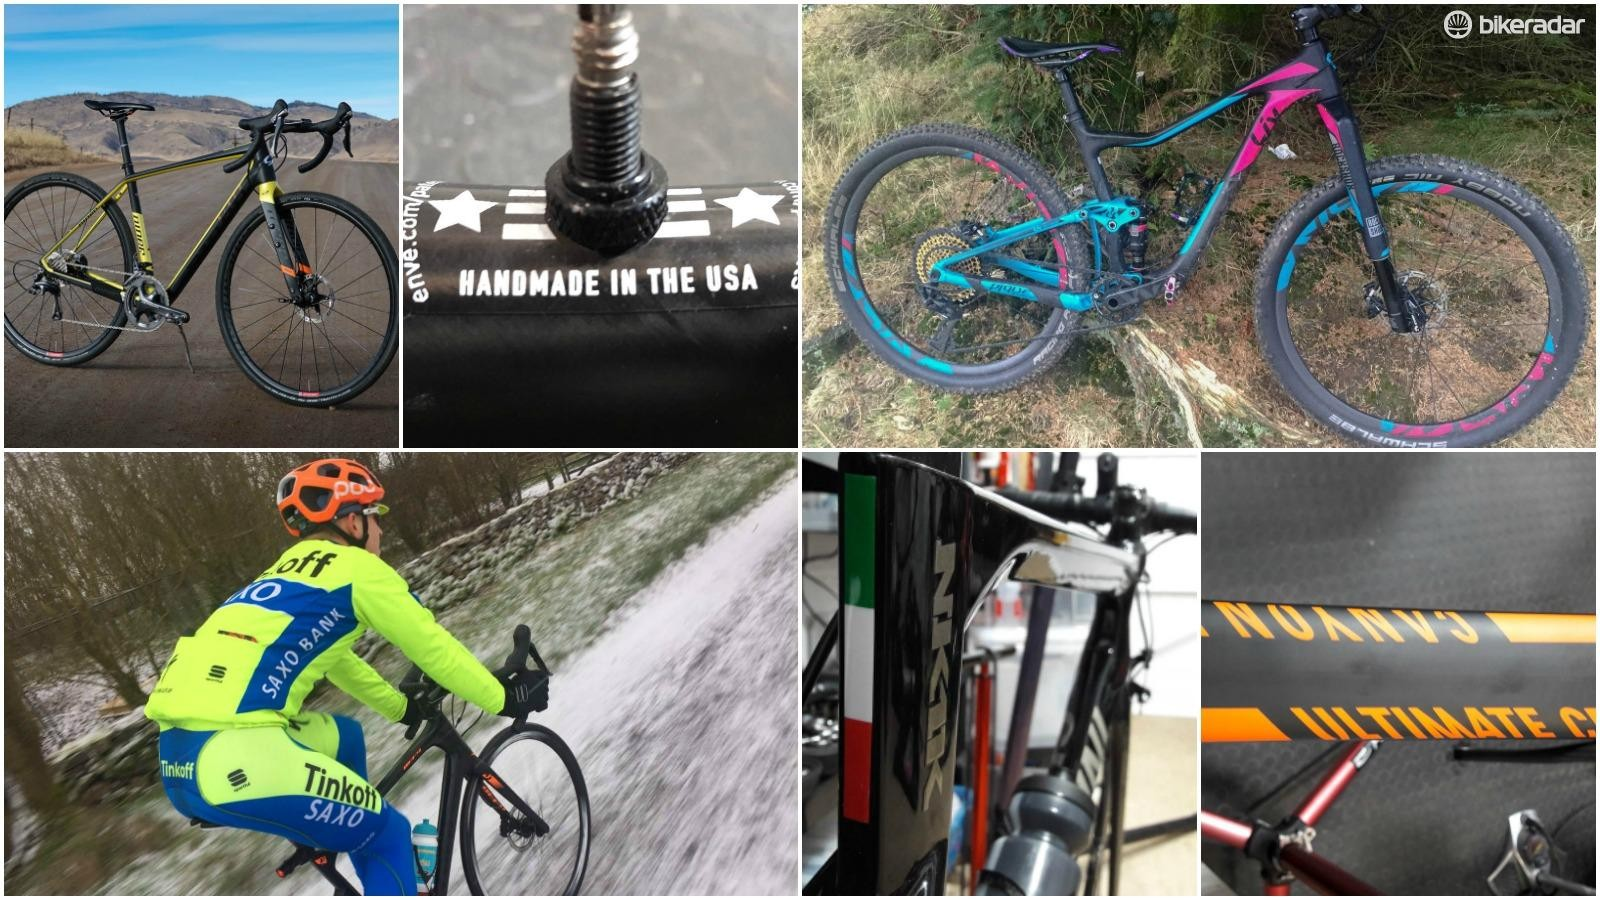 Here's the gear we've loved riding this past week